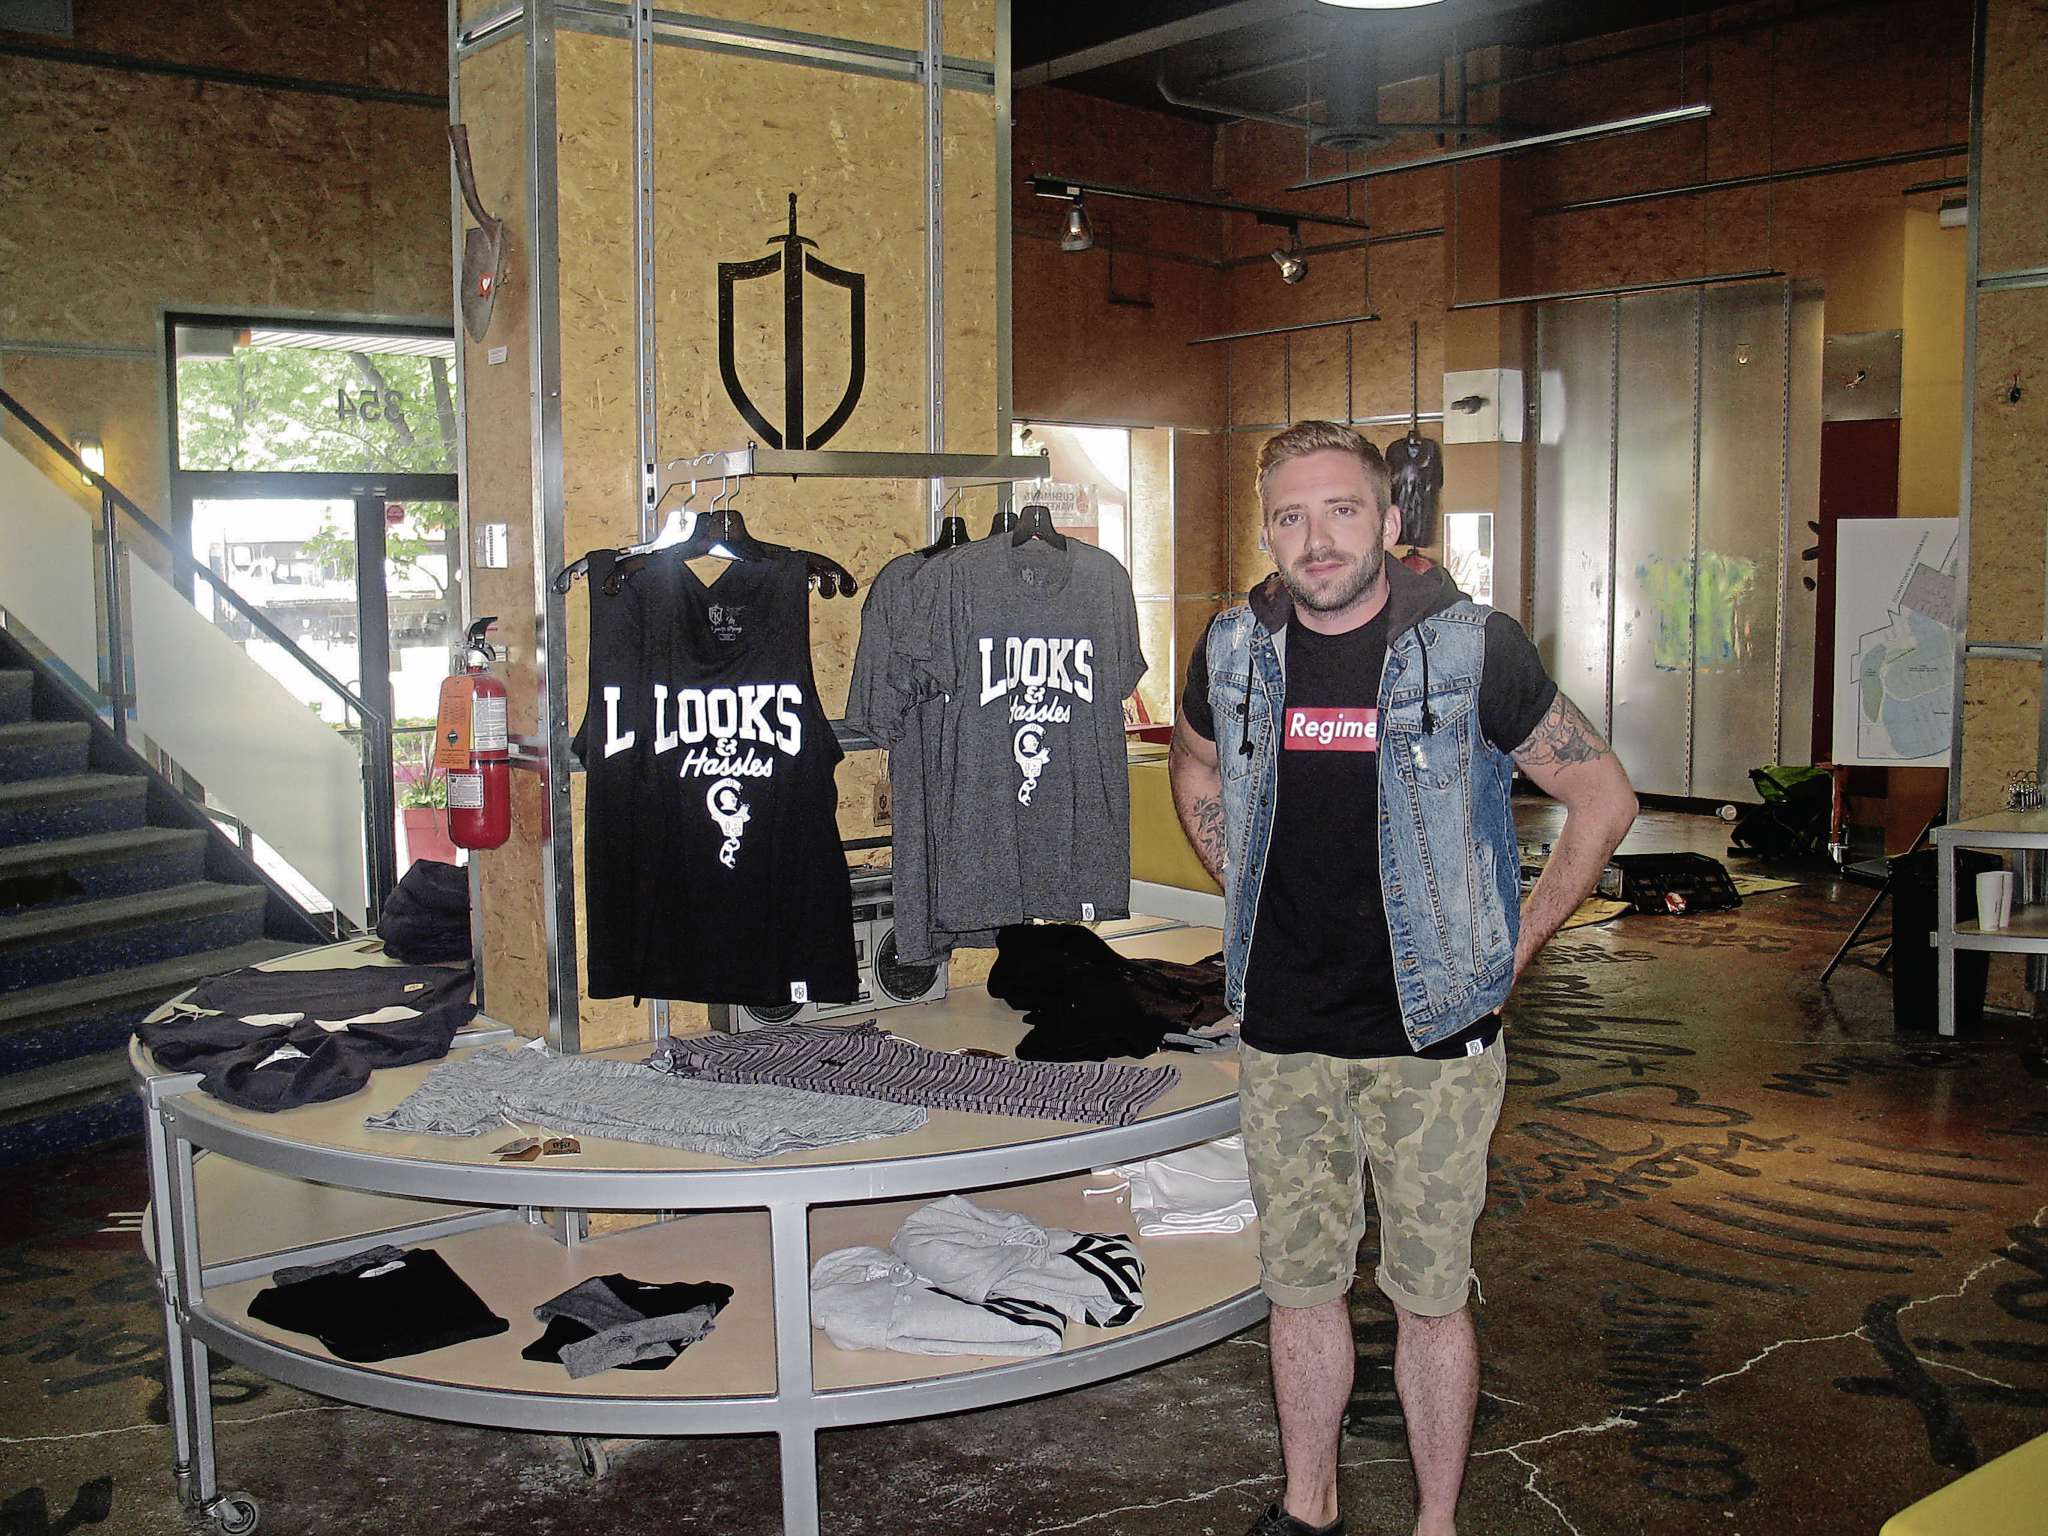 July 27, 2016 - Eric Olek poses with some of his designs at Friday Knights Clothing at 354 Portage Ave.